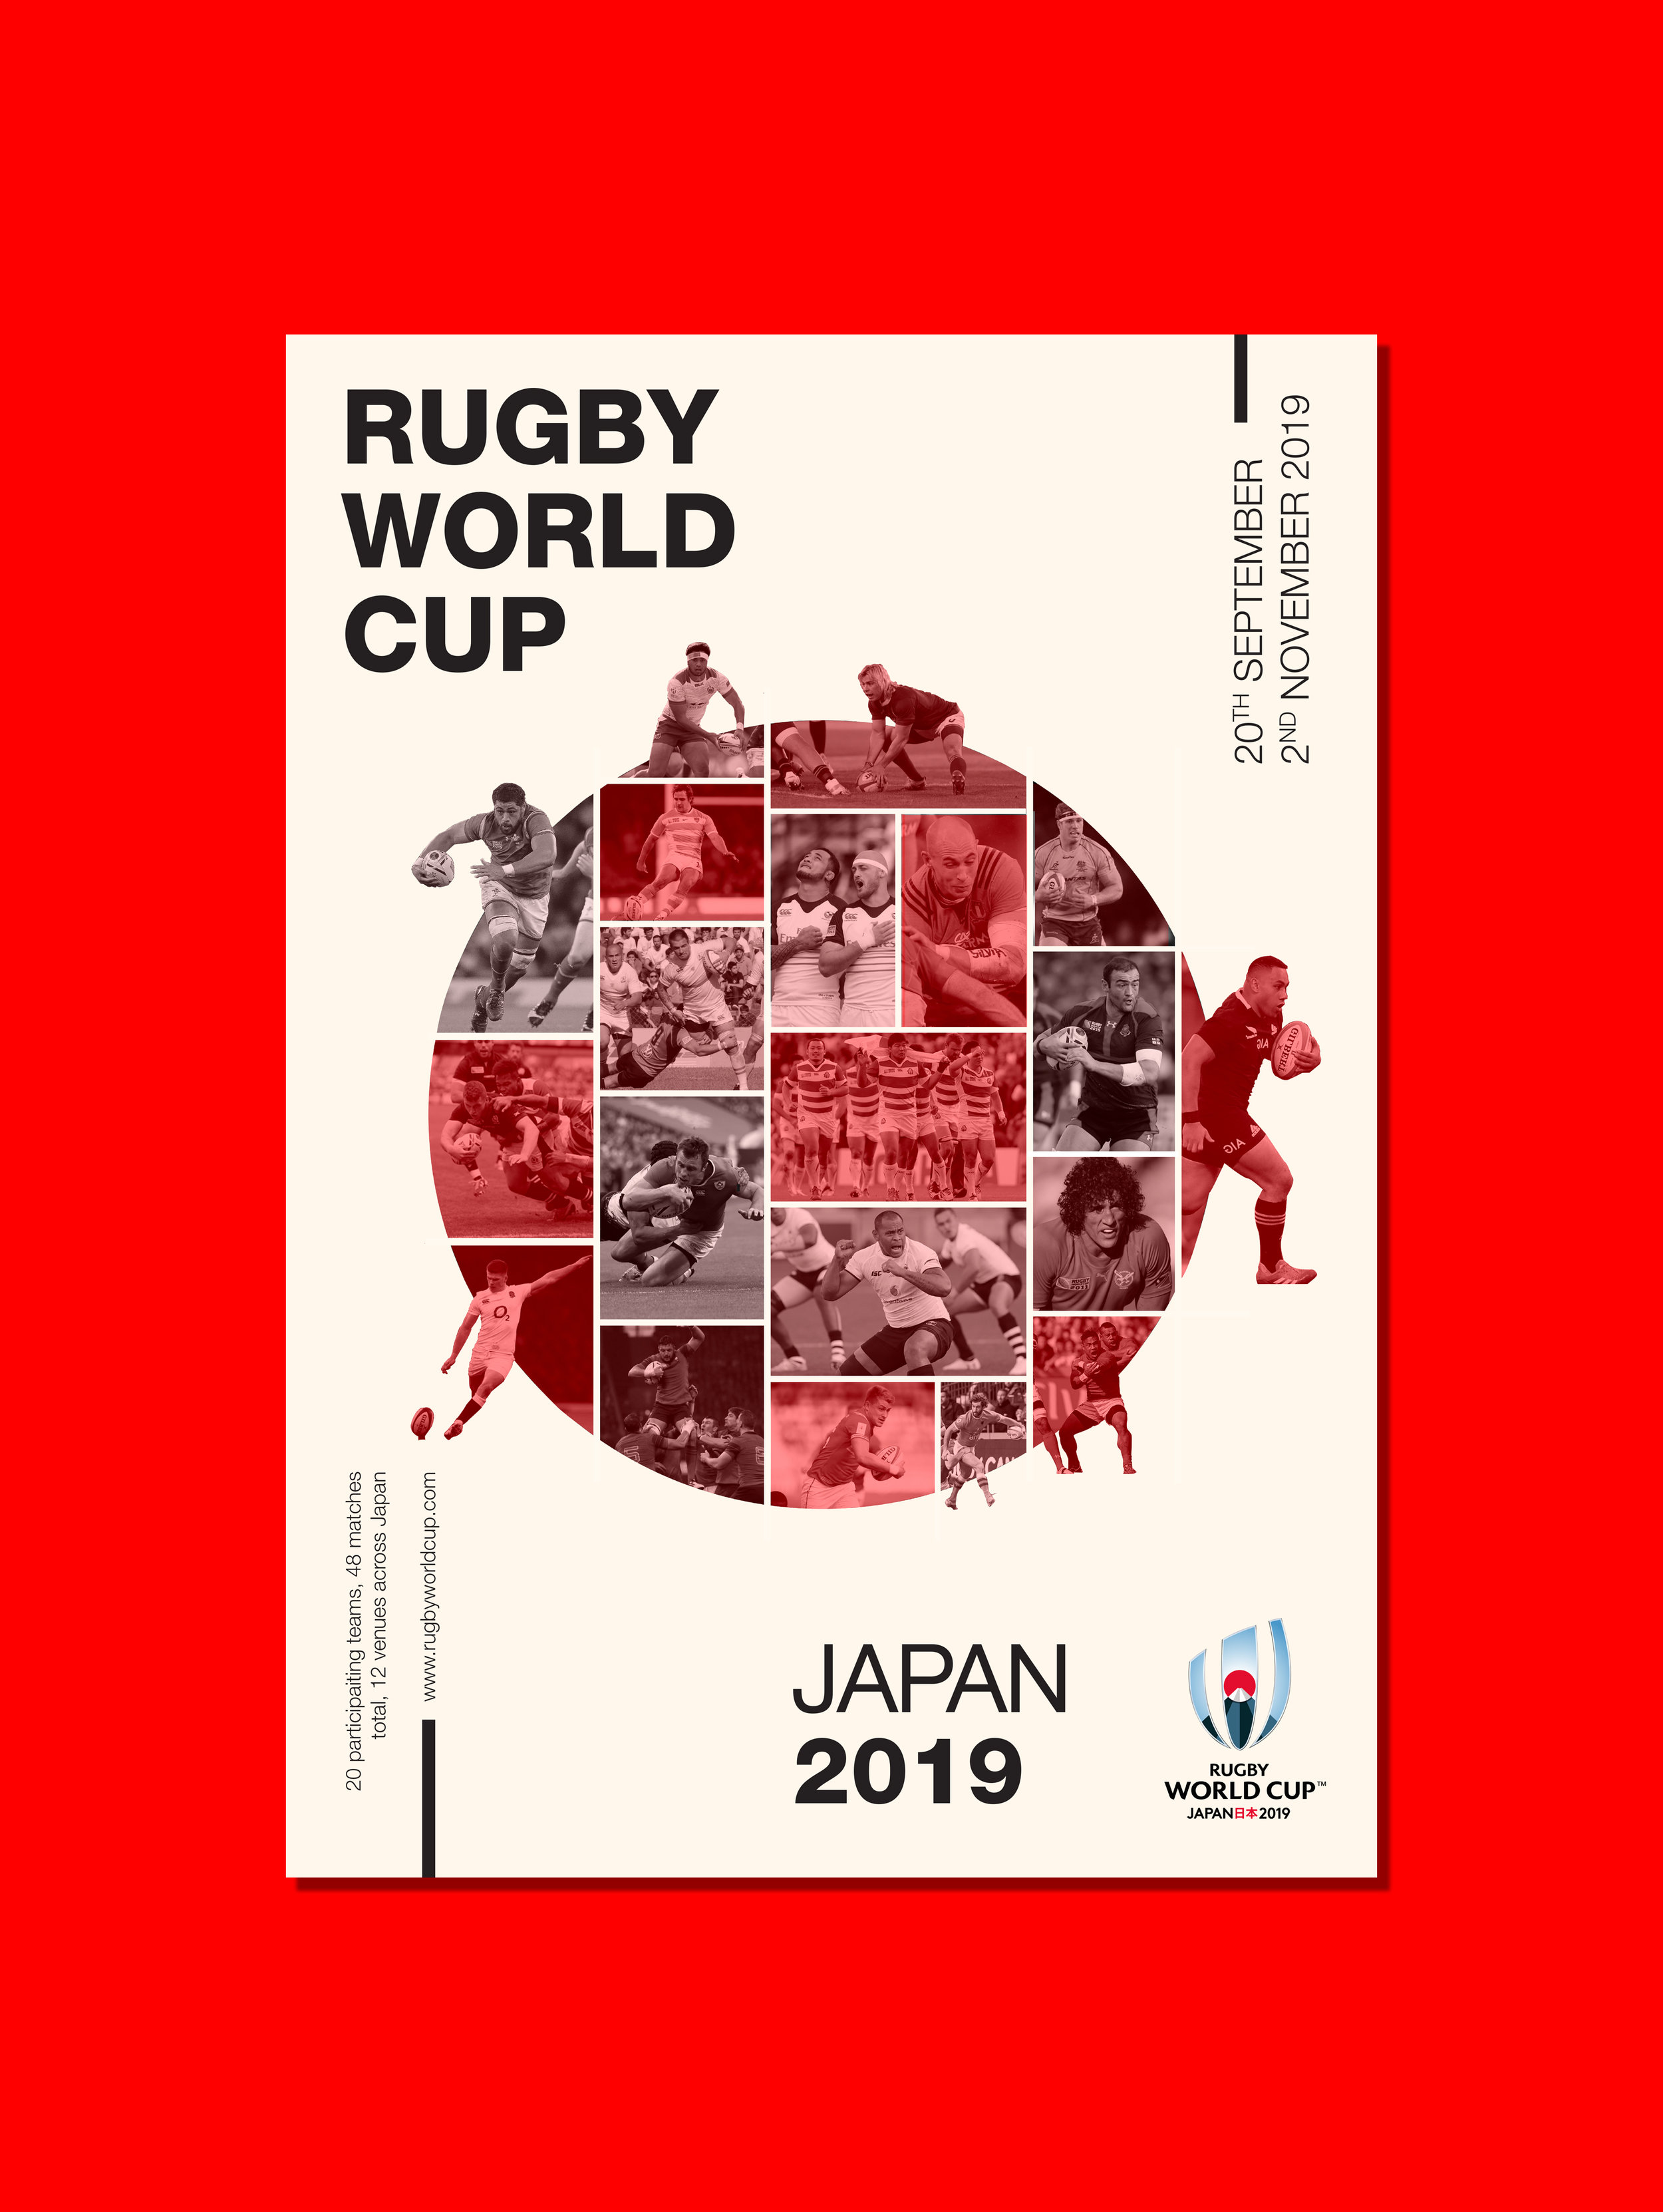 Rugby World Cup 2019 Poster Design